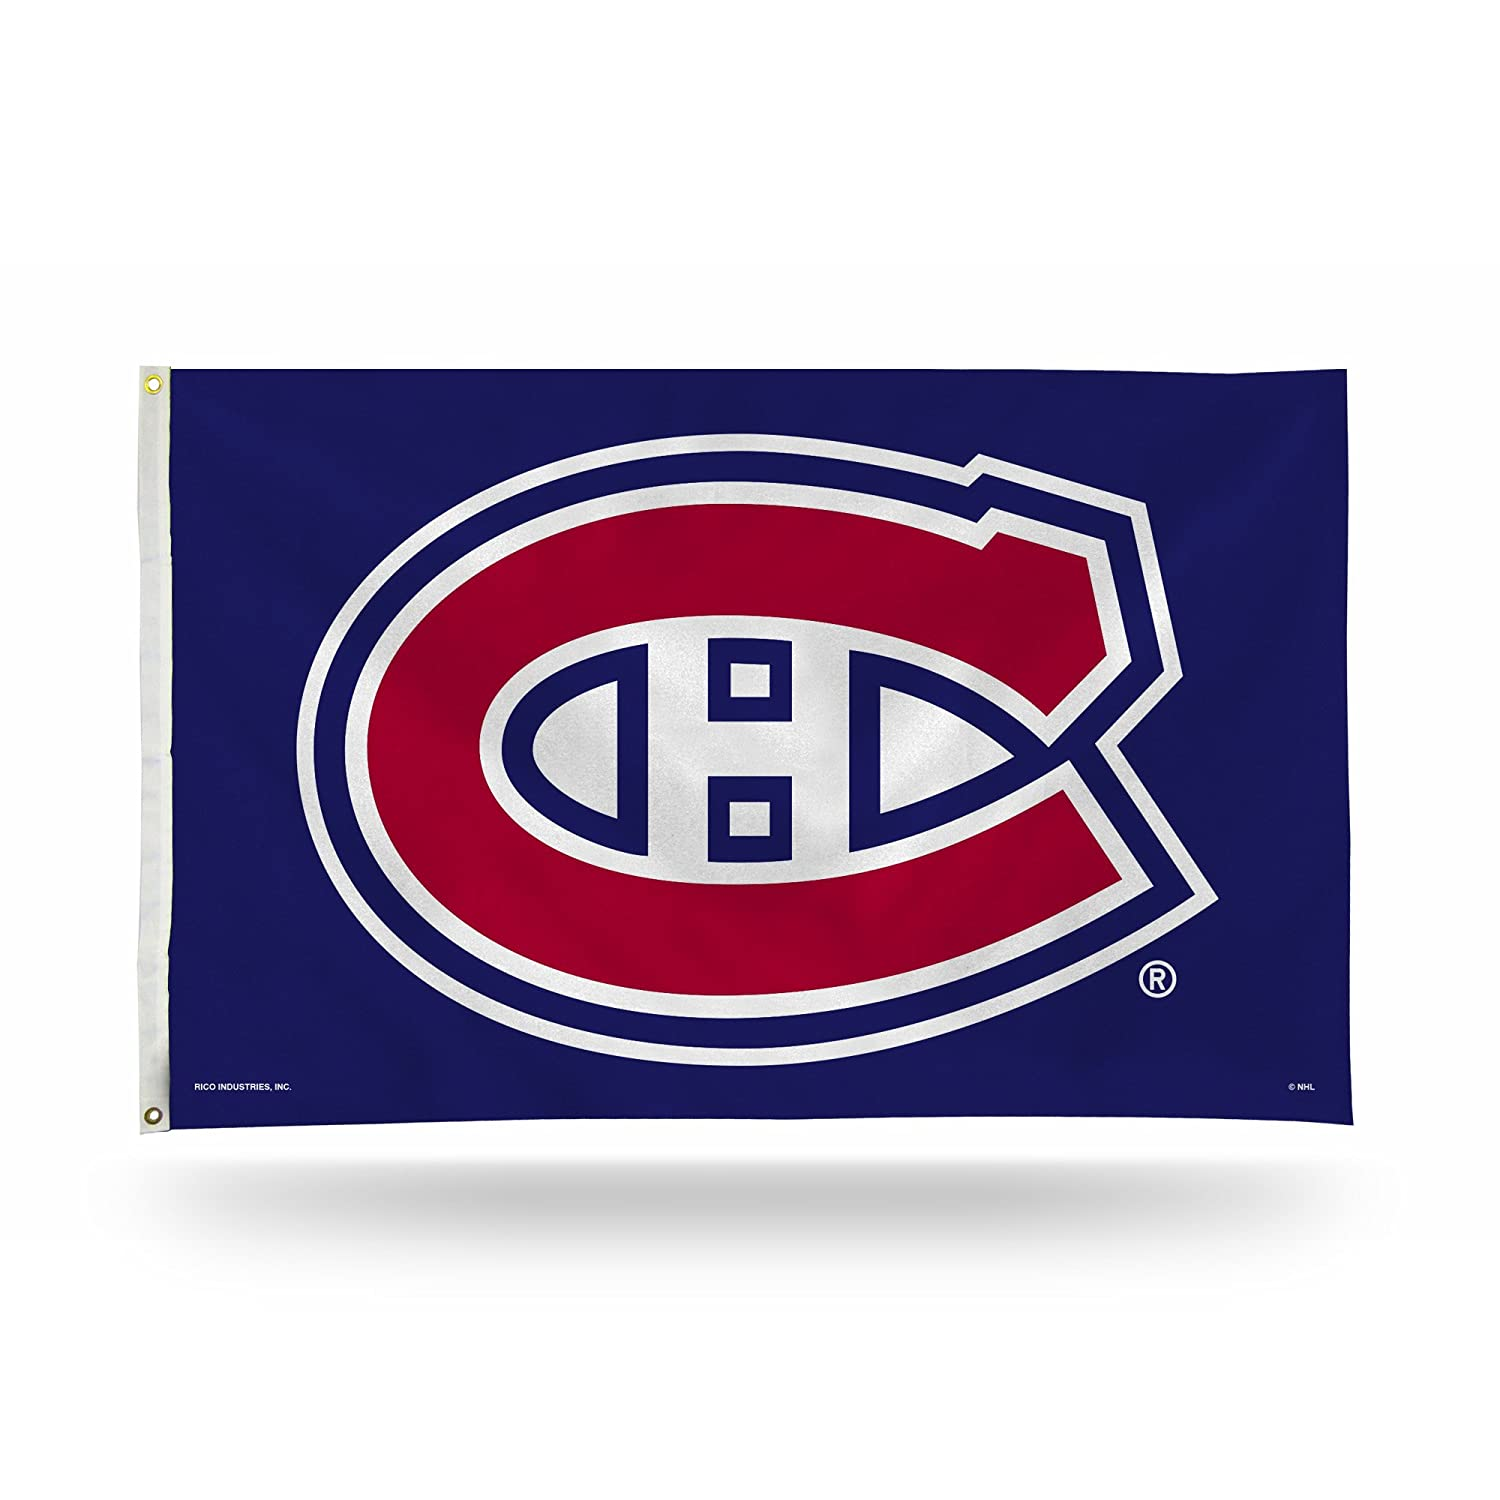 NHL 3 Foot by 5 Foot Single Sided Banner Flag with Grommets